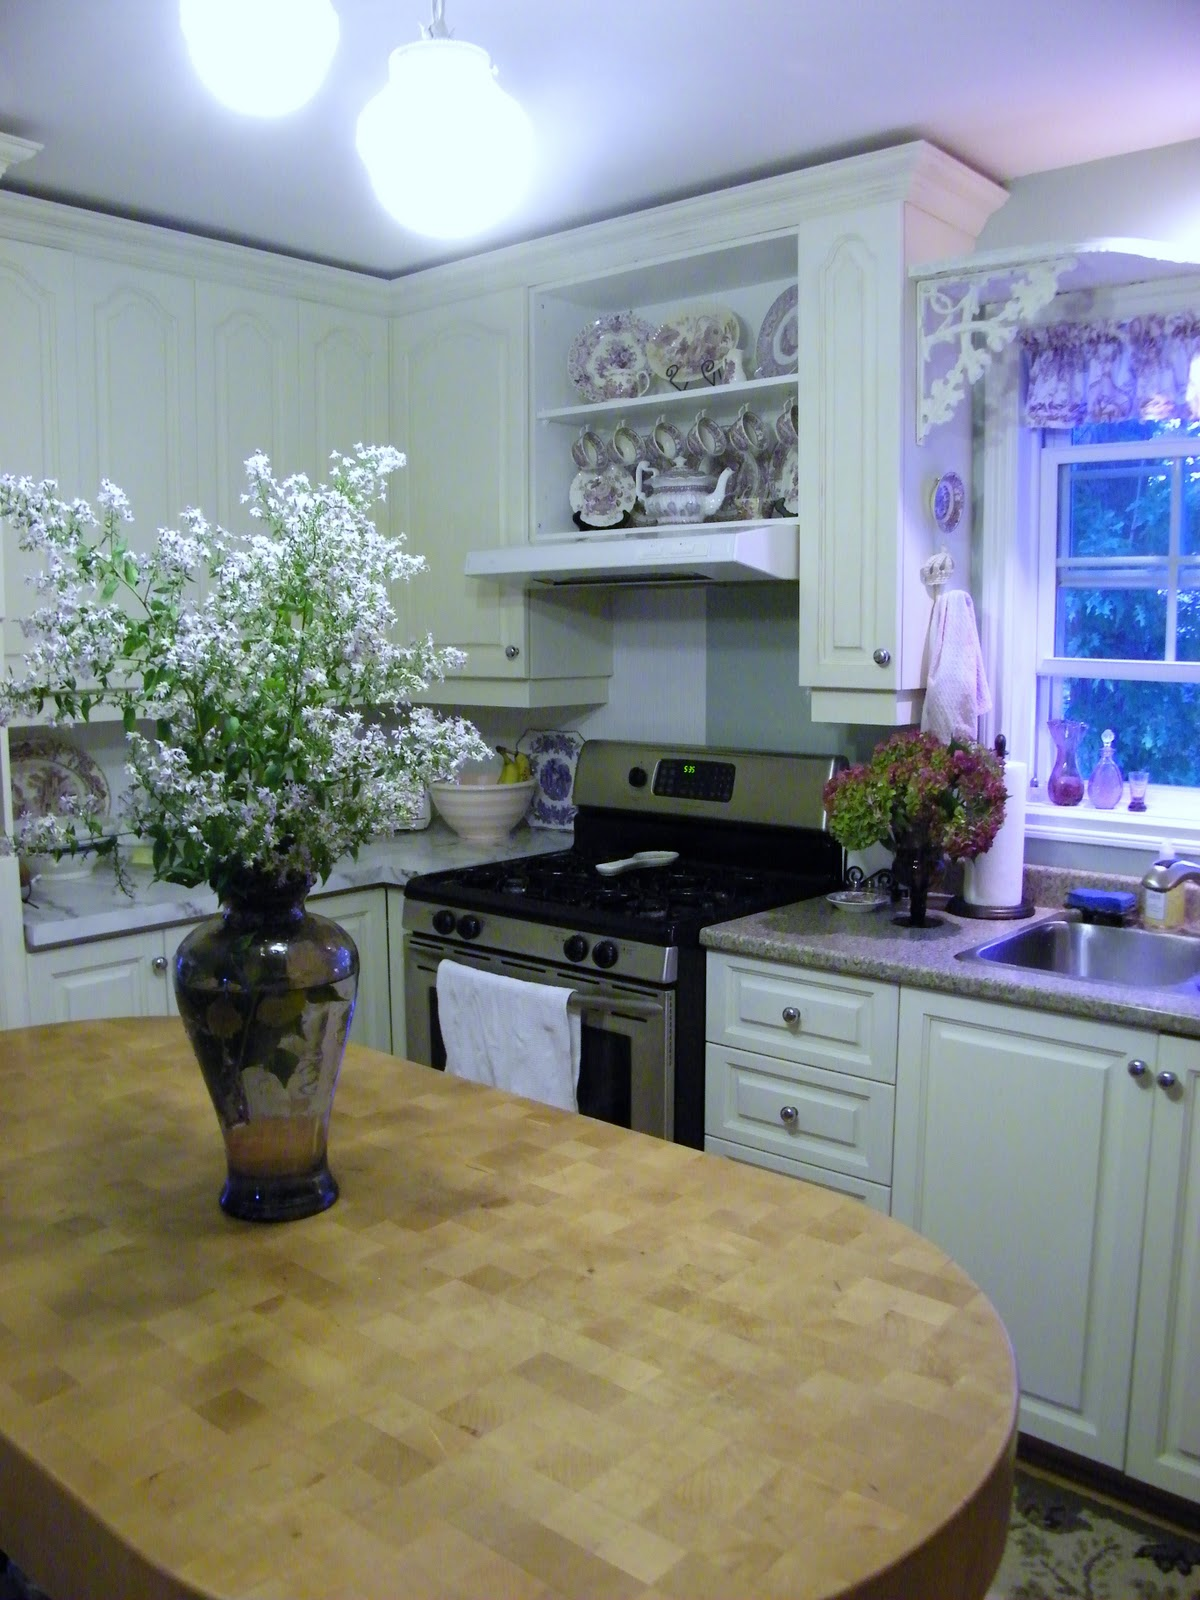 Maison Decor: Kitchen Update: Moving cabs and making a tiny hutch